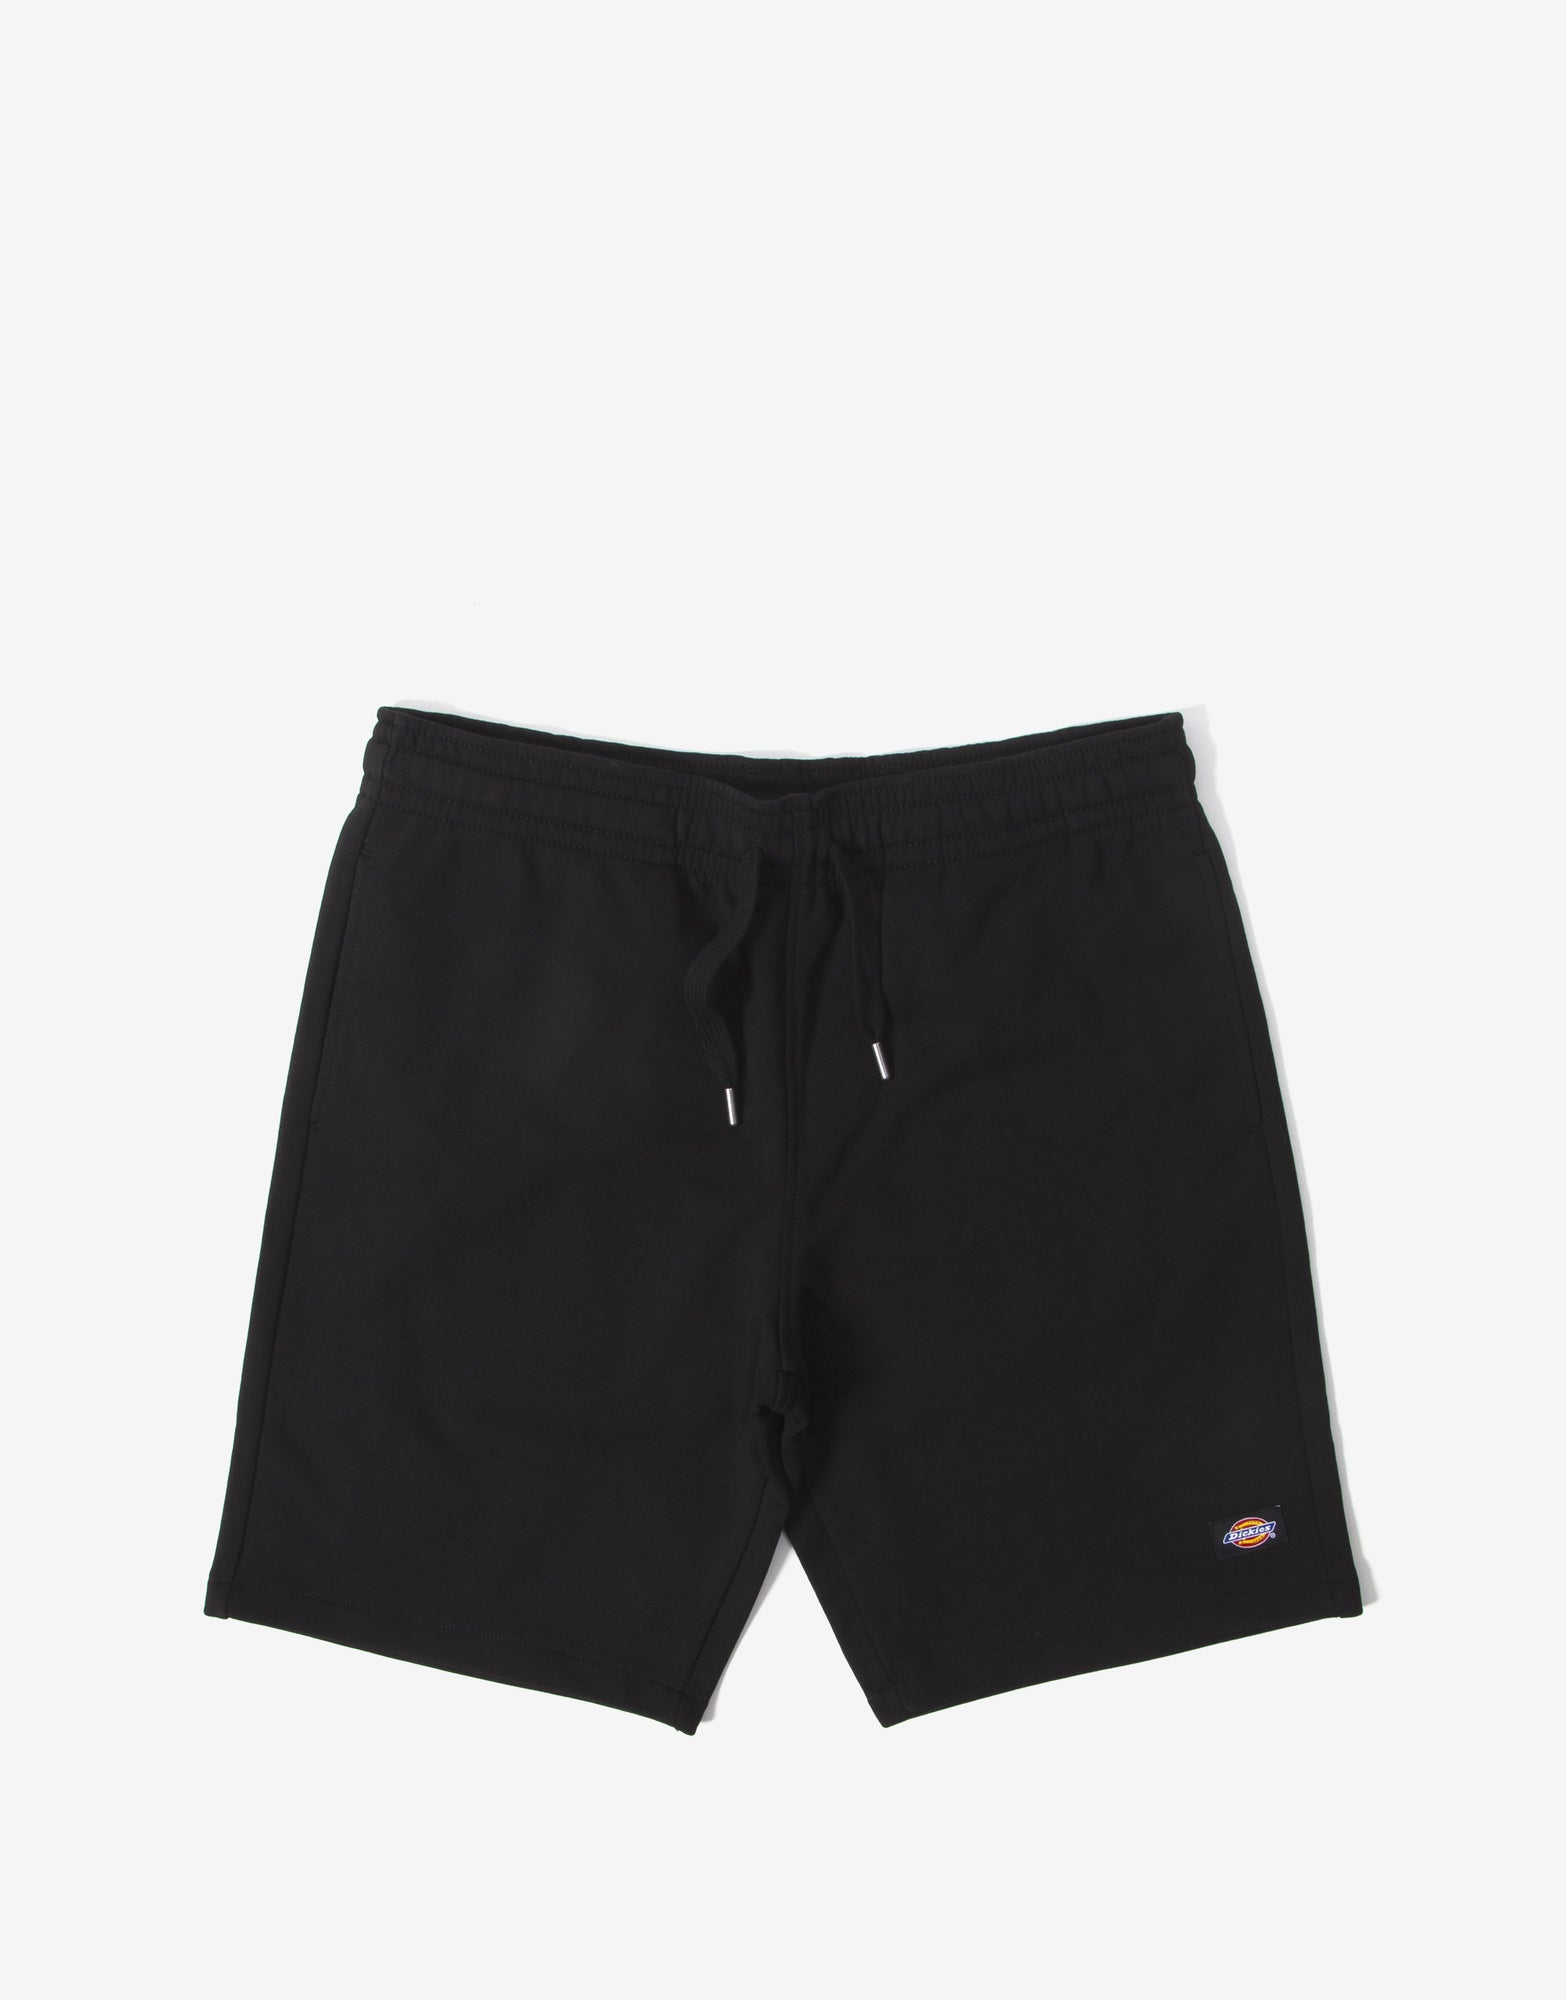 Dickies Champlin Shorts - Black